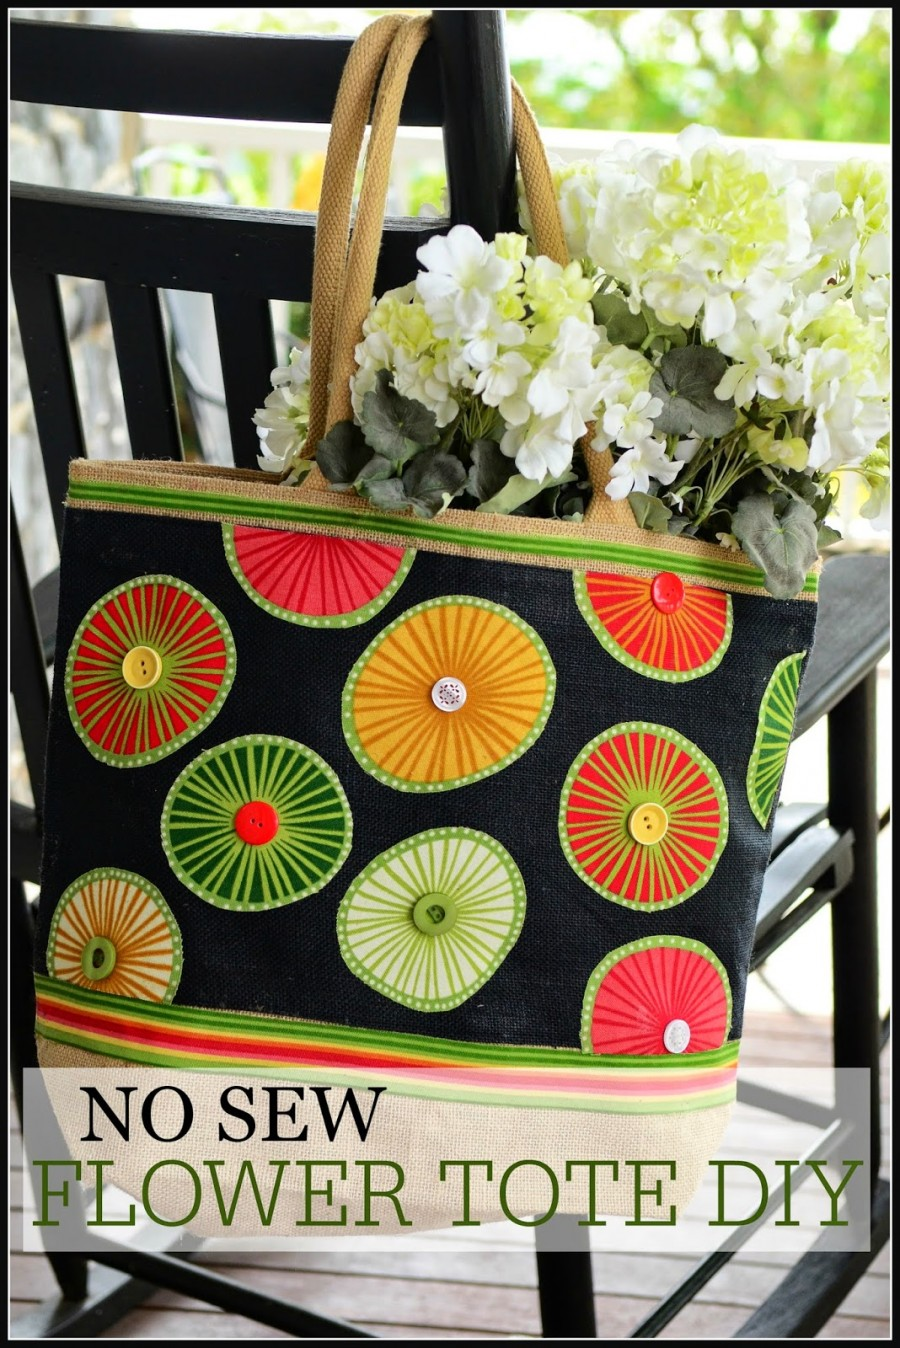 NO SEW FLOWER TOTE DIY